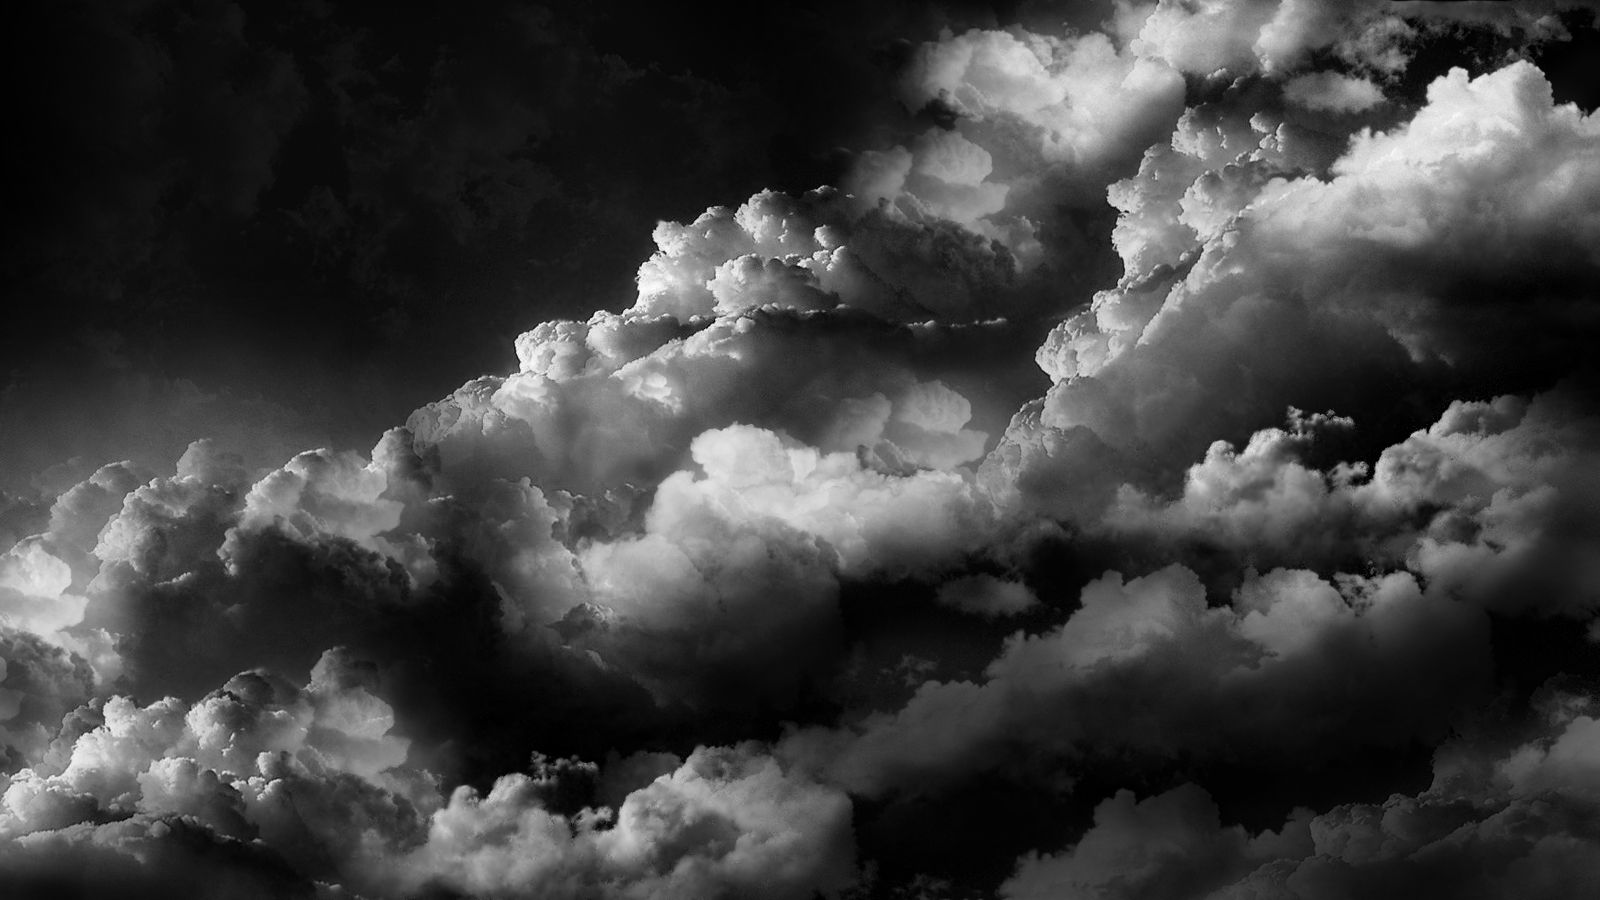 Black And White Clouds Wallpapers Top Free Black And White Clouds Backgrounds Wallpaperaccess